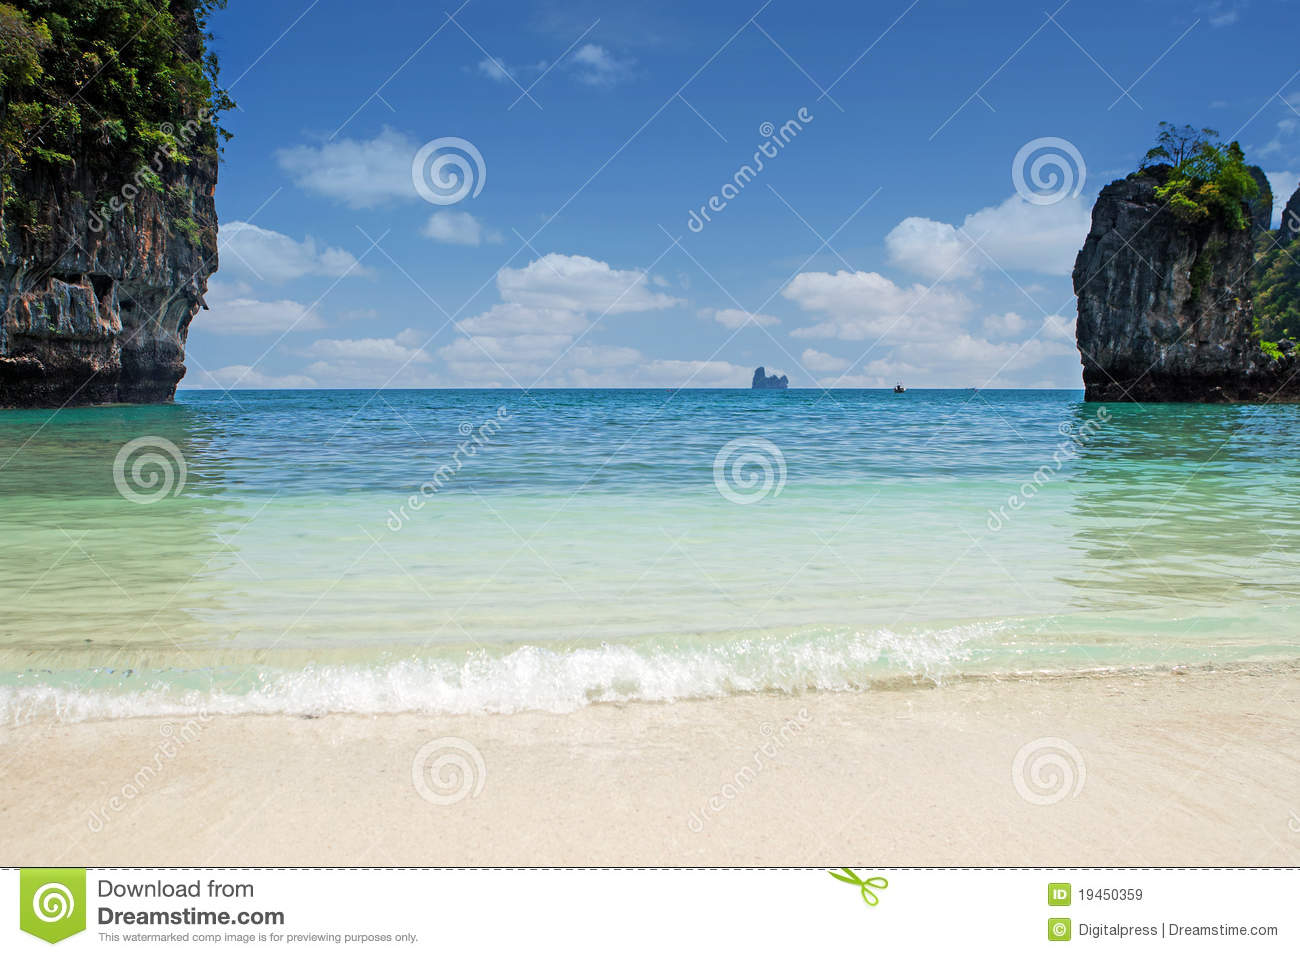 Lagoon Tropical Island: Lagoon With Tropical Beach Royalty Free Stock Images